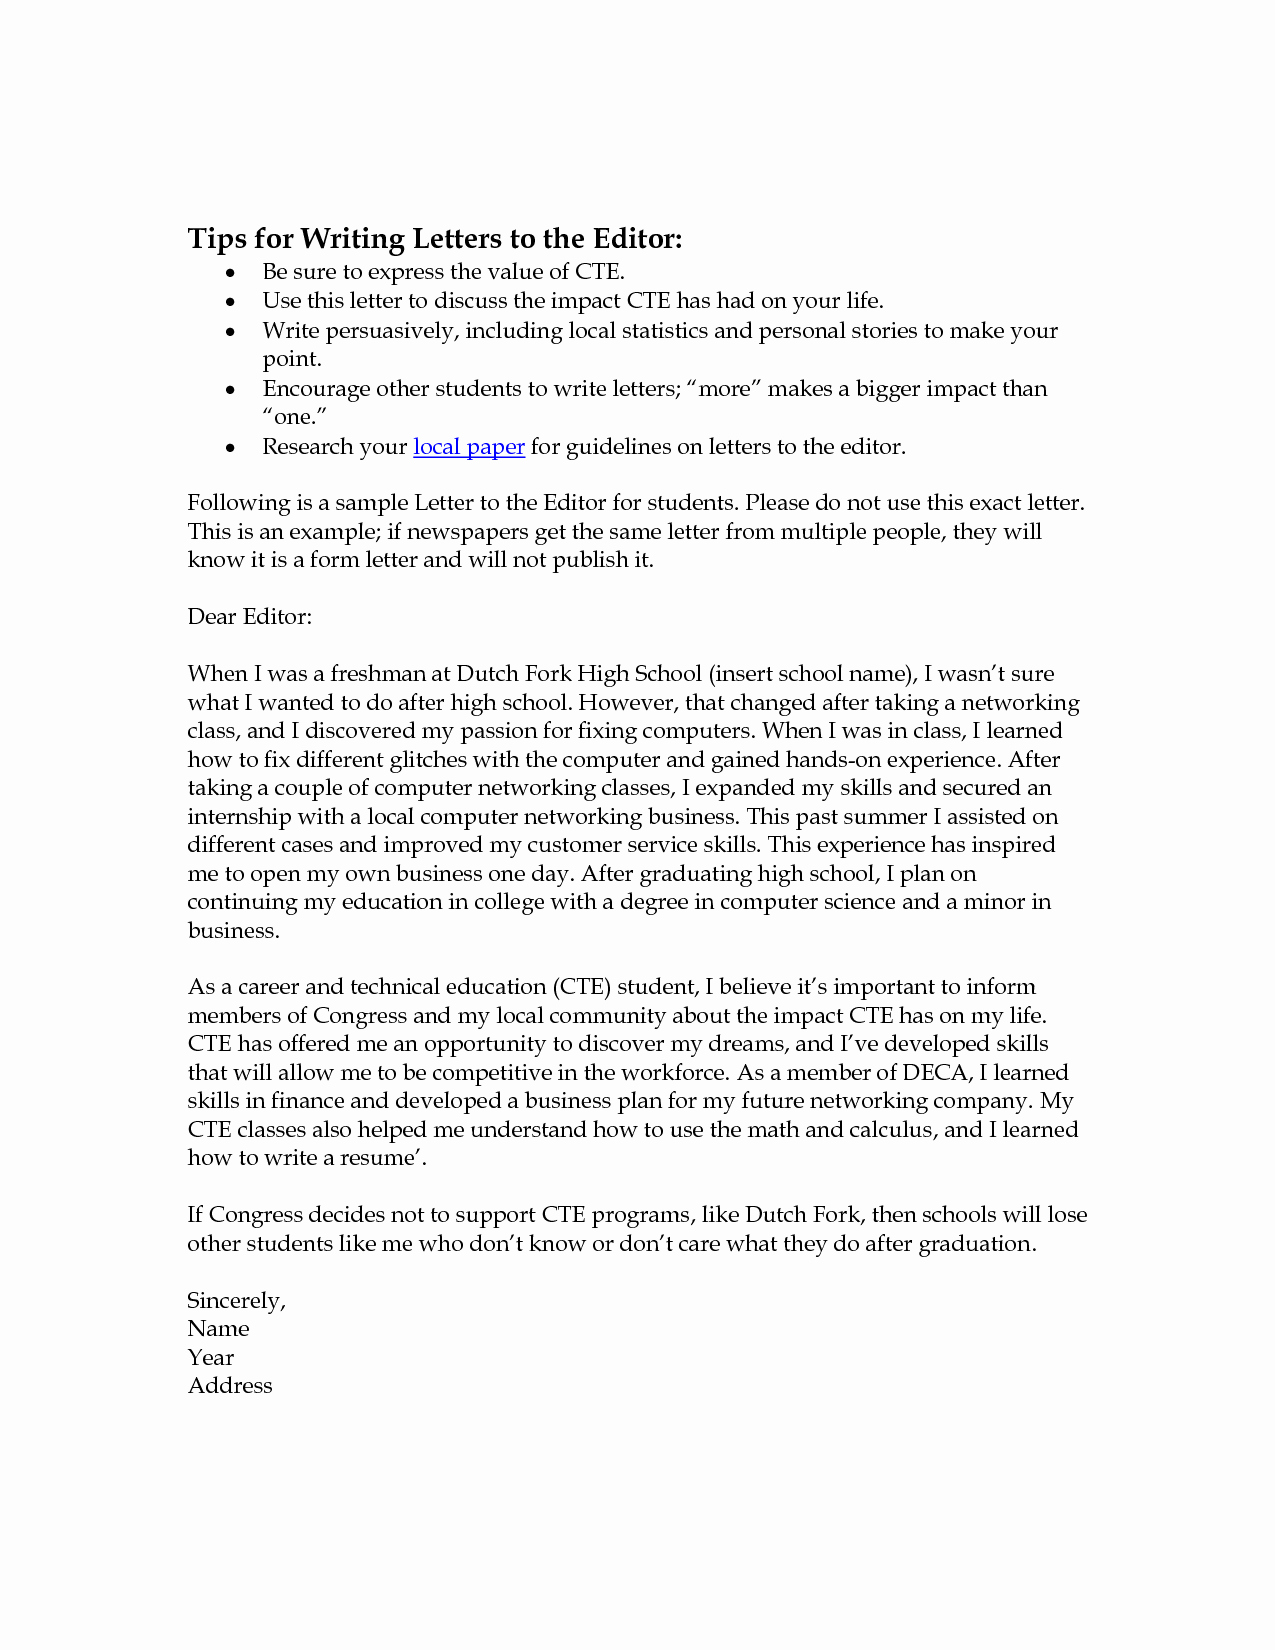 Letter to the Editor Templates New Letter to Editor format Cover Letter Samples Cover